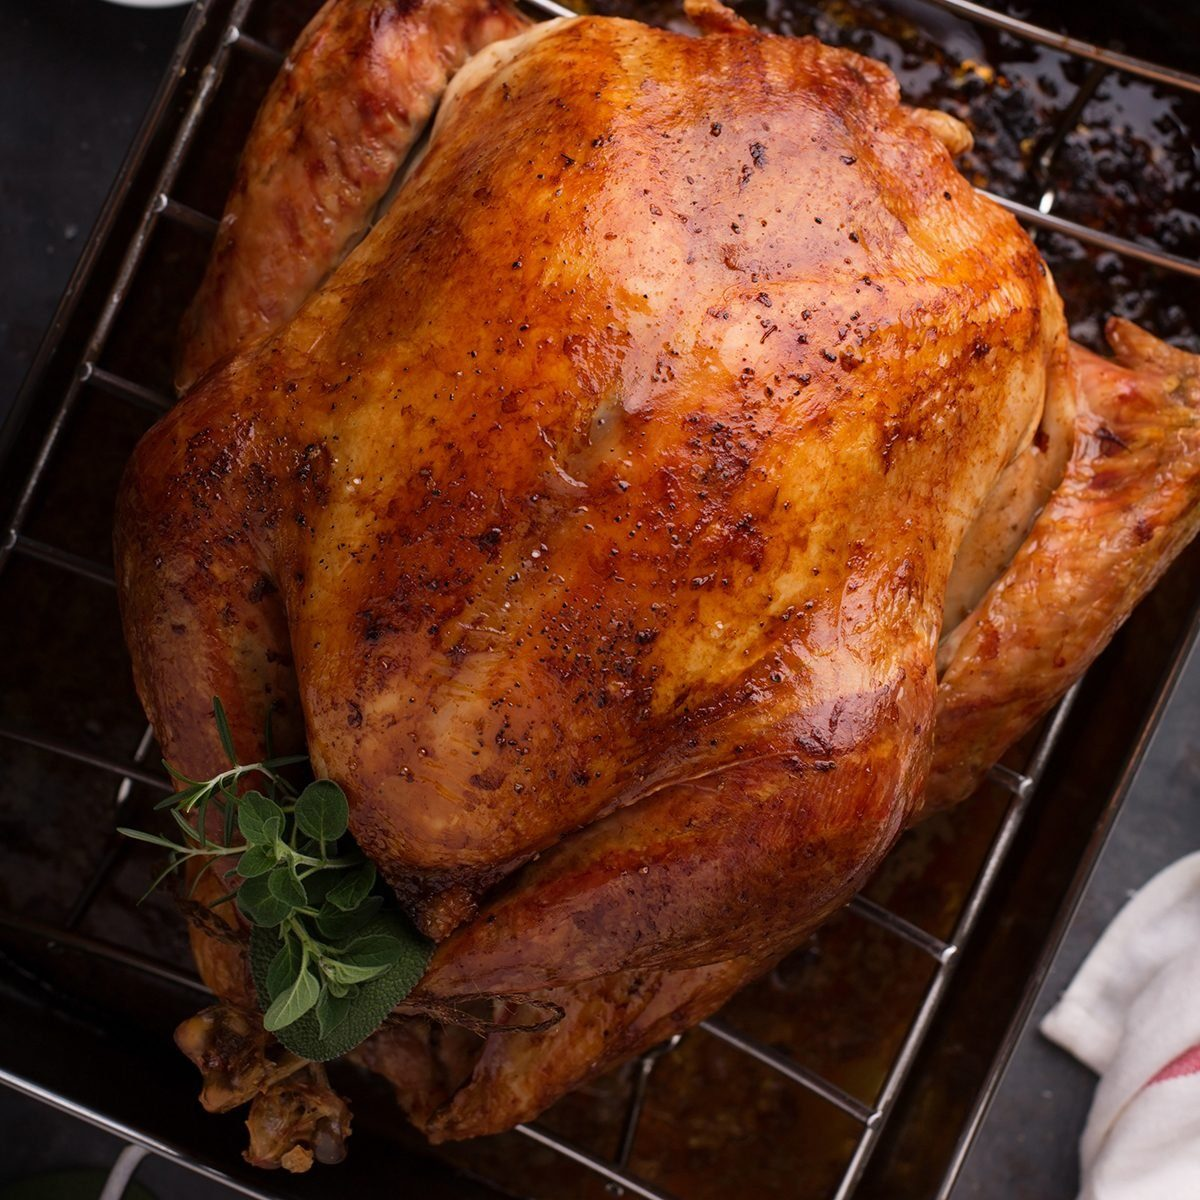 Cooked turkey for Thanksgiving or Christmas in a roasting pan ready for carving; Shutterstock ID 737627662; Job (TFH, TOH, RD, BNB, CWM, CM): TOH